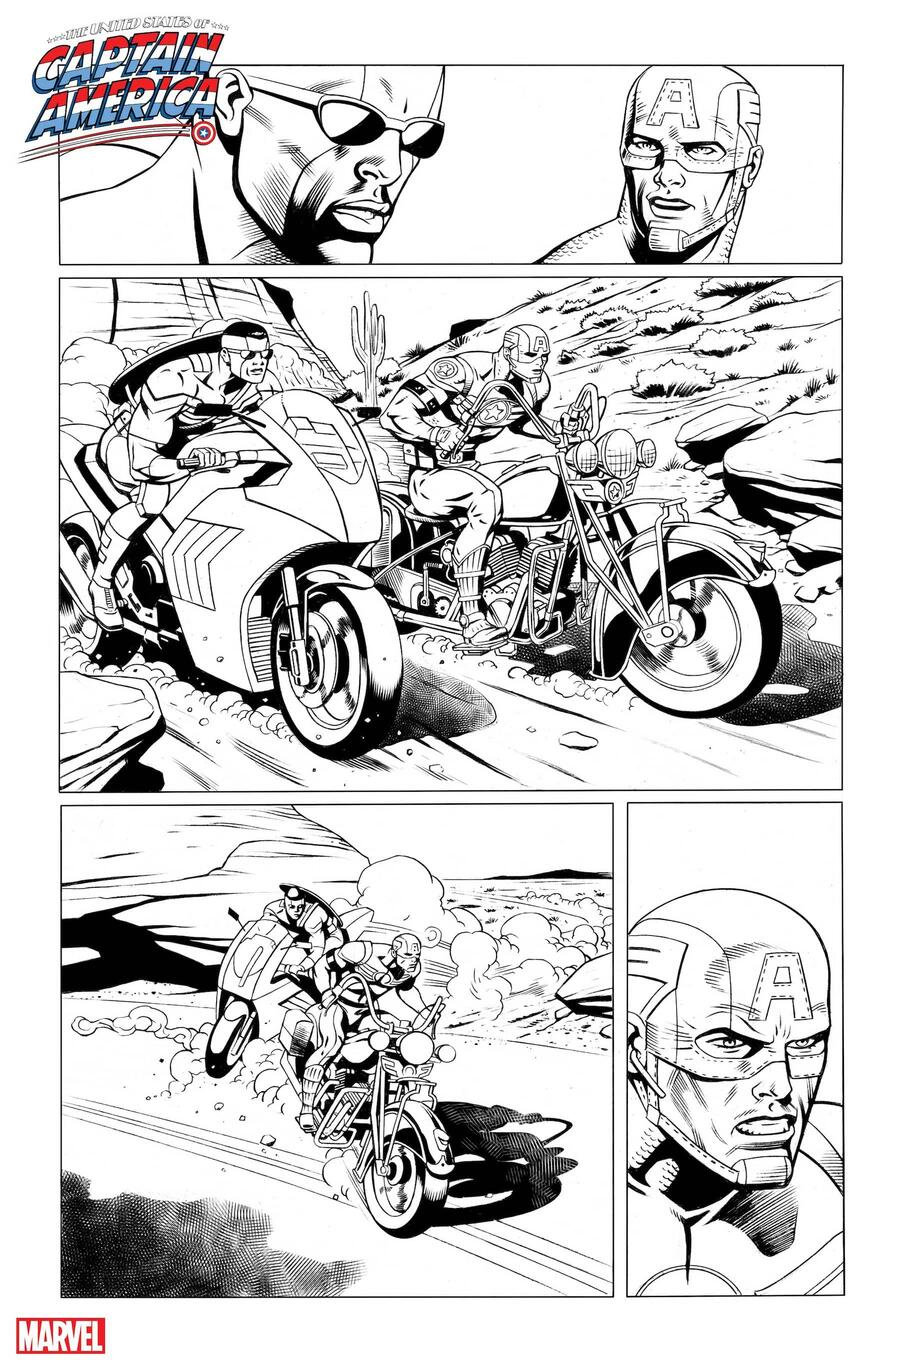 THE UNITED STATES OF CAPTAIN AMERICA #3 preview inks by Dale Eaglesham